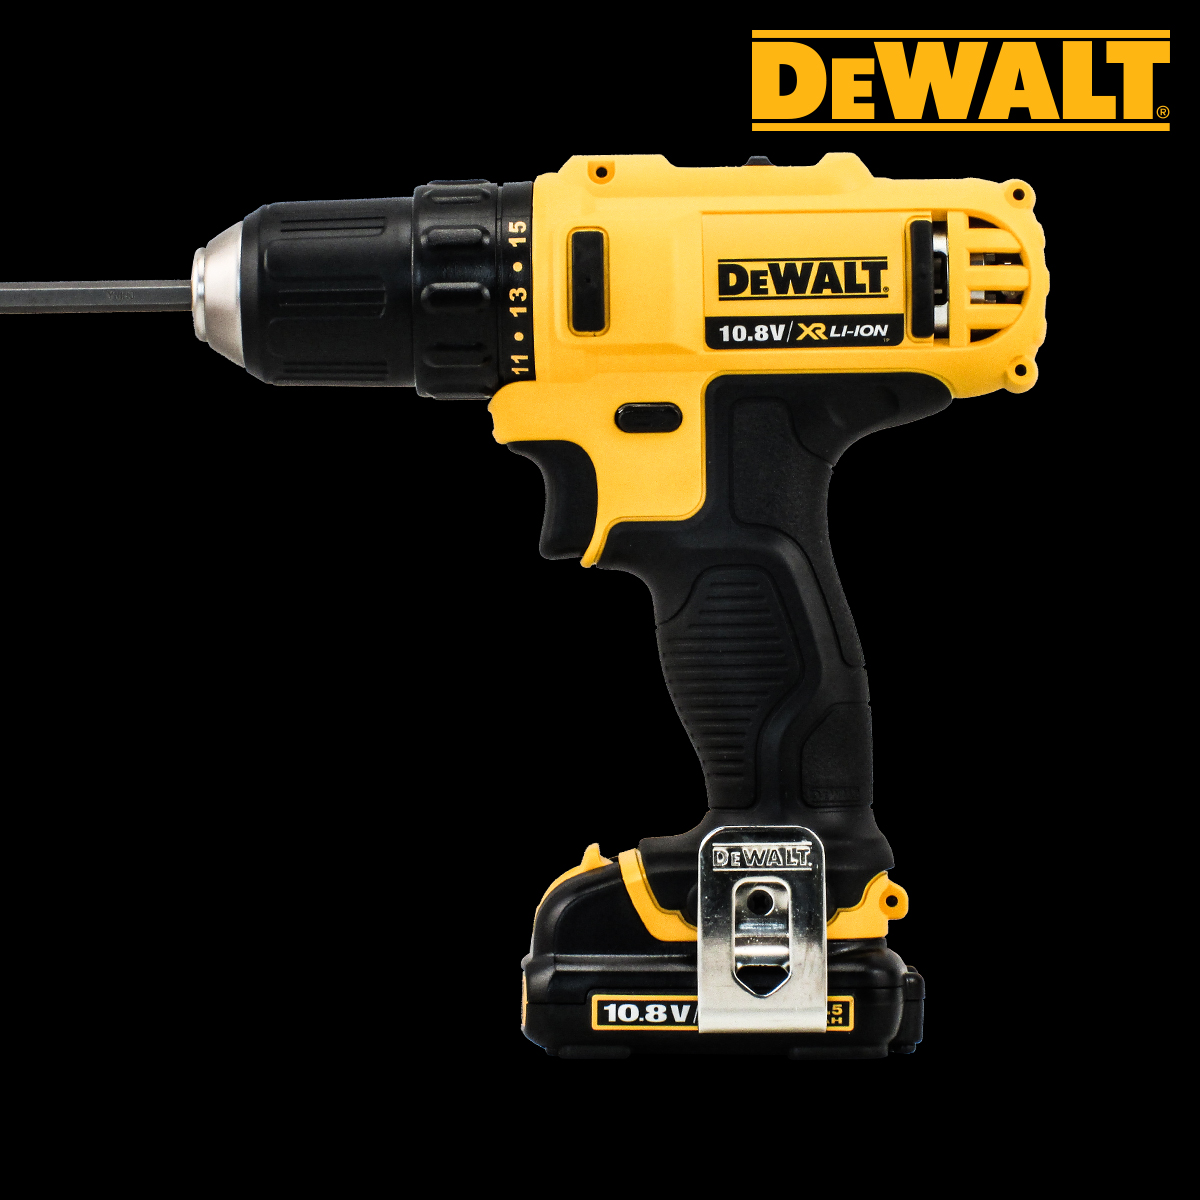 Stanley dewalt series 10.8V 1.5ah lithium rechargeable lithium rechargeable drill drill screwdriver kit 10mm